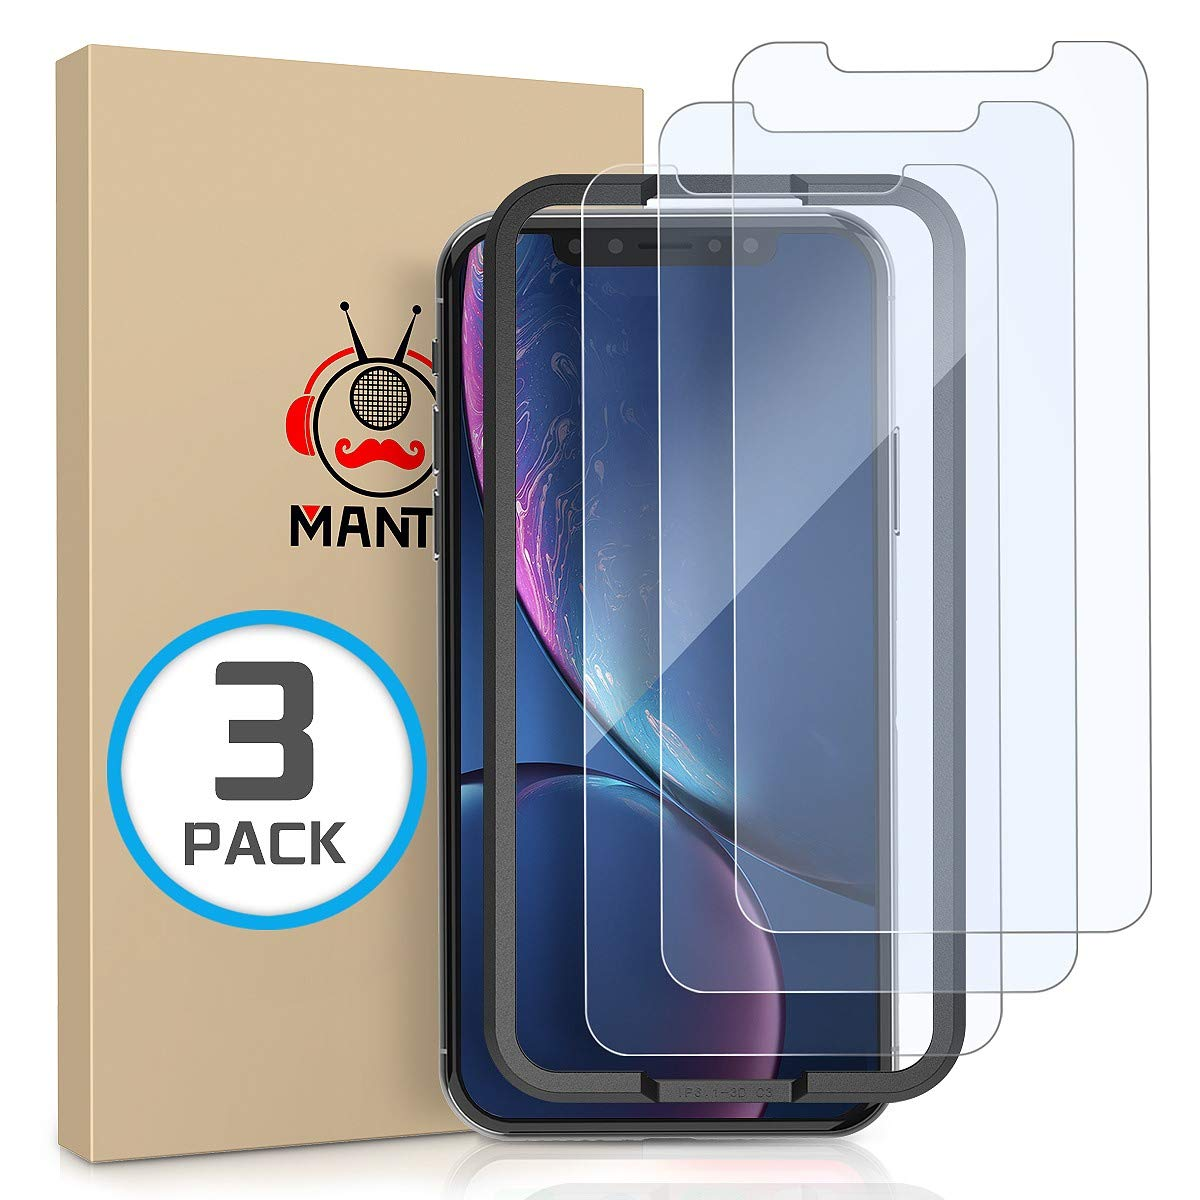 MANTO 3 Pack Screen Protector for iPhone 11 and iPhone XR 6.1 Inch Tempered Glass Protector Film Anti Fingerprint, Case Friendly, Clear